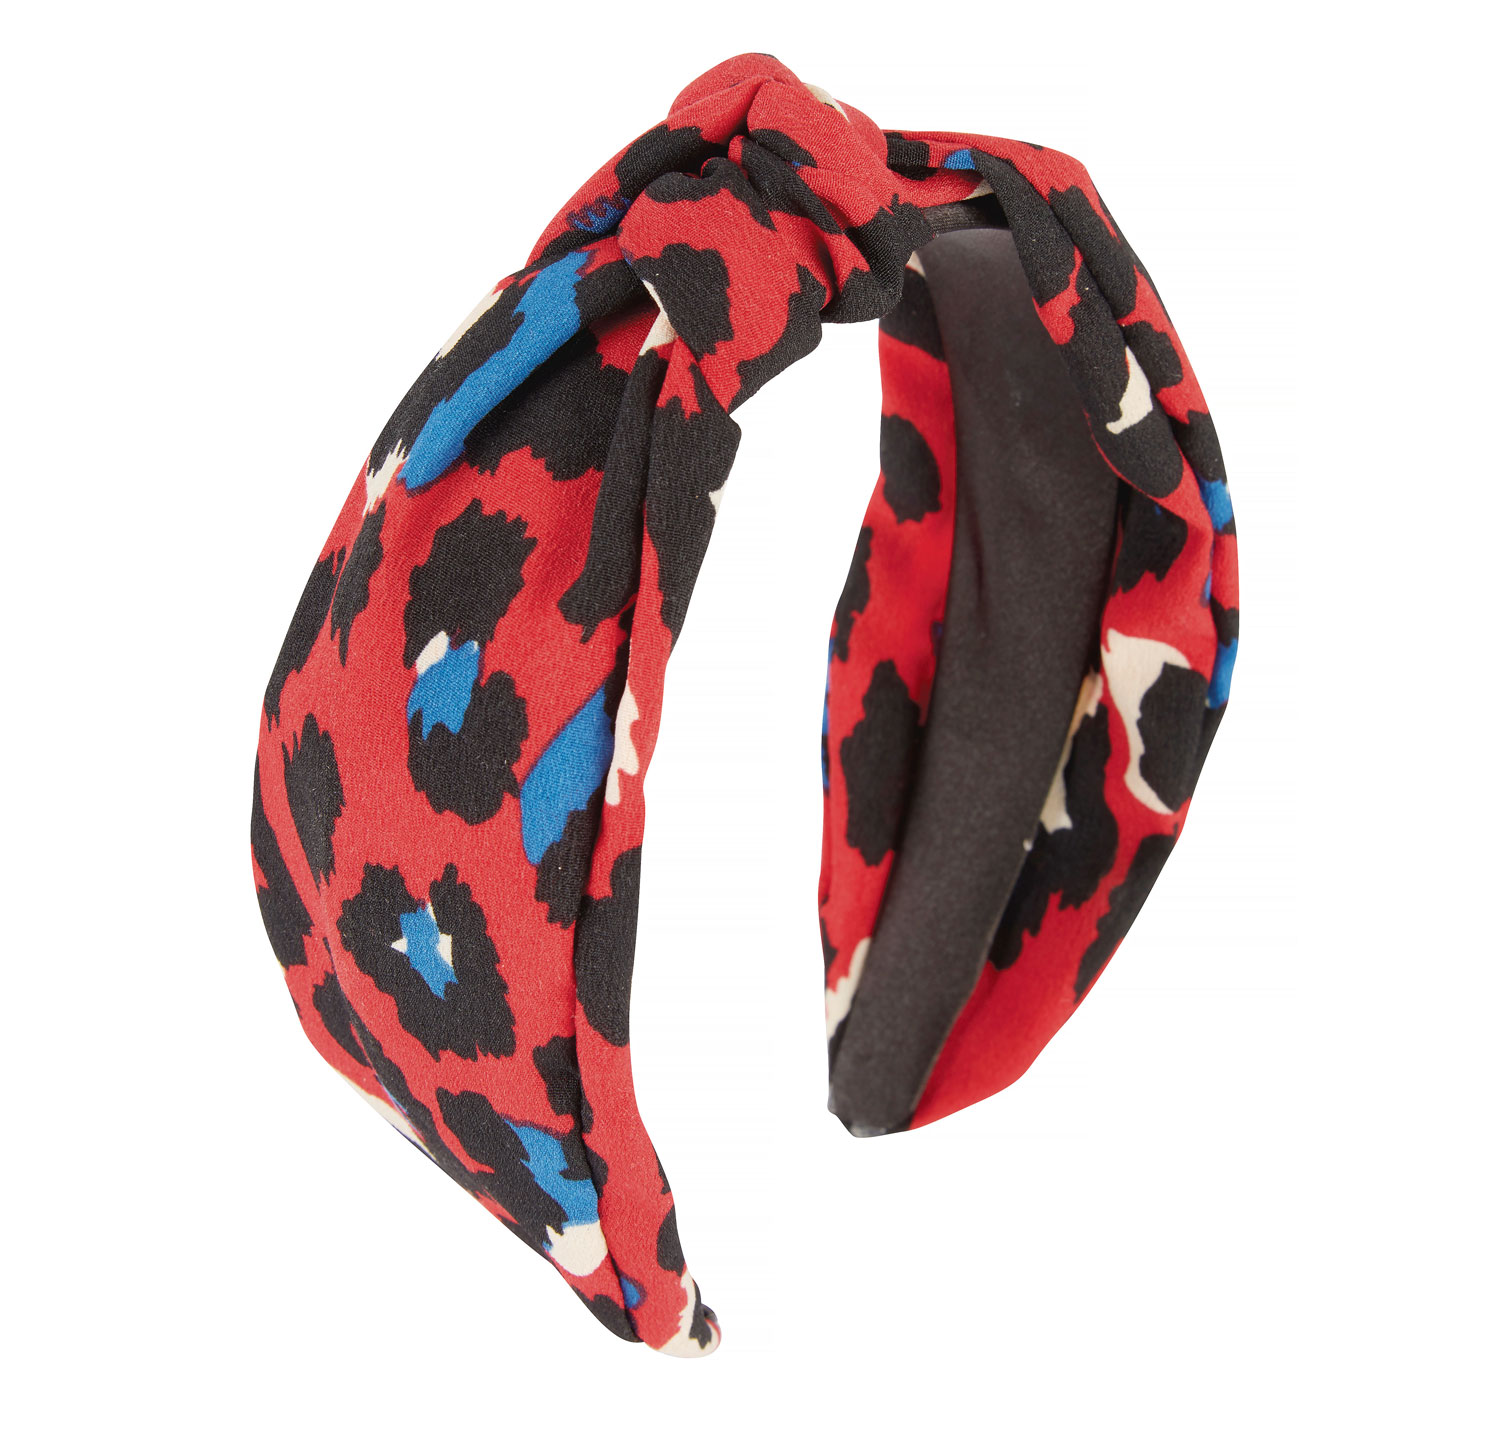 V BY VERY Leopard Knot Front Headband, £6